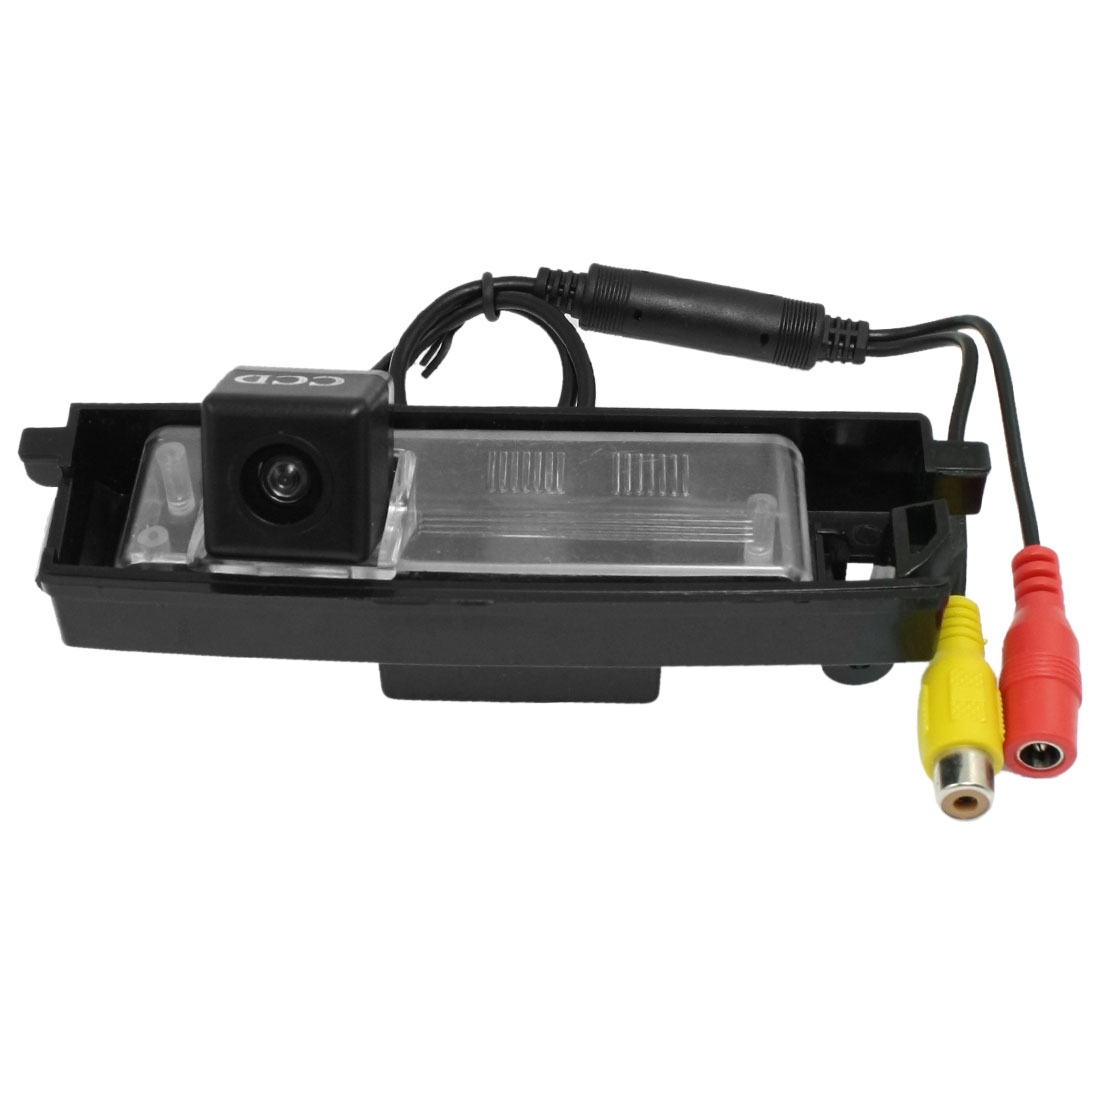 170 Angle CCD Waterproof Backup Rear View Parking Reverse Camera for Toyota RAV4